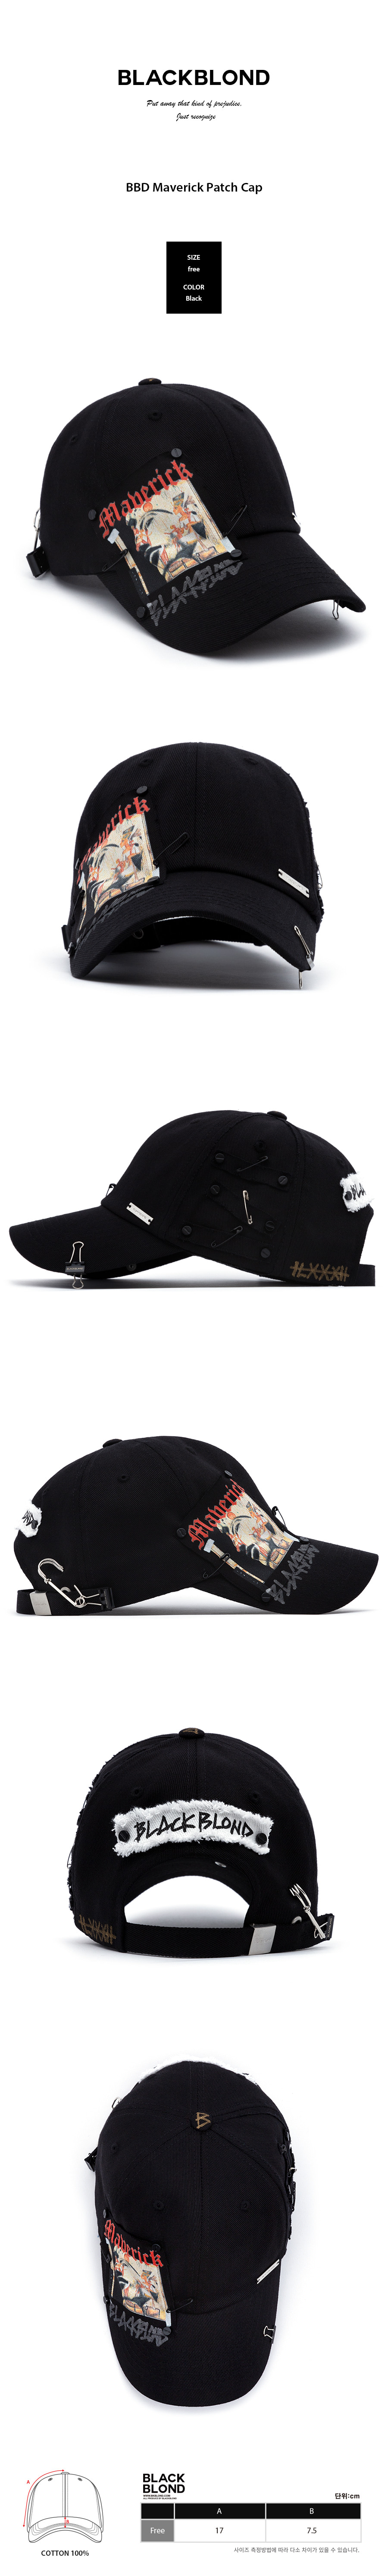 BLACKBLOND - BBD Maverick Patch Cap (Black)